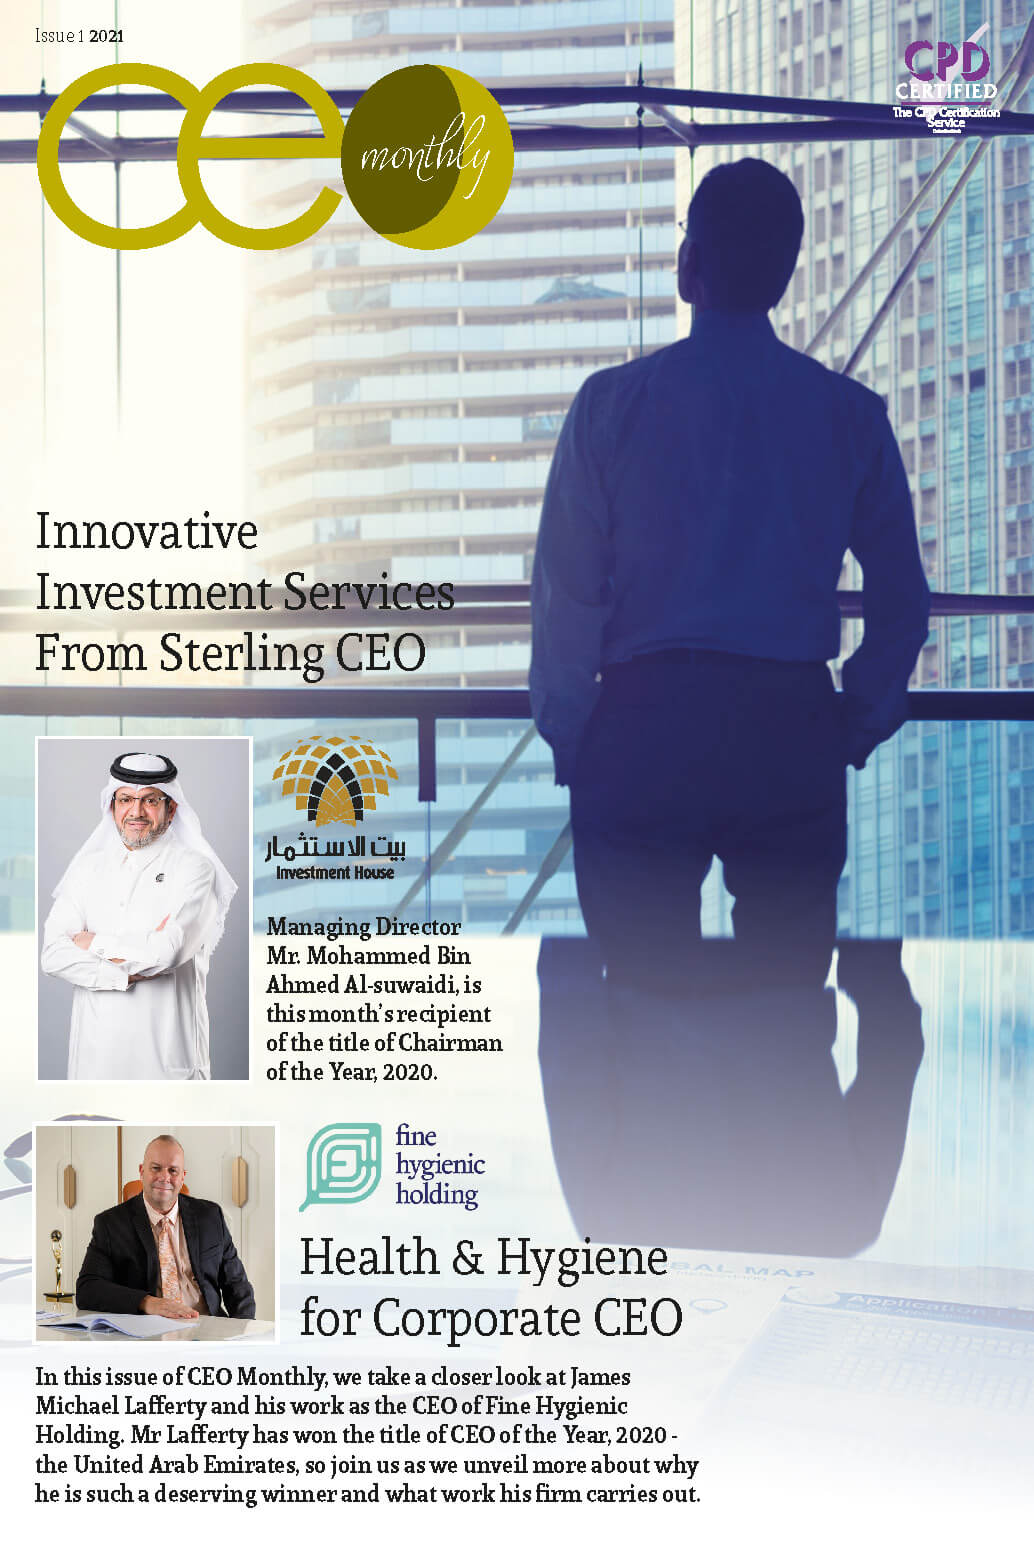 CEO Monthly Issue 1 2021 cover